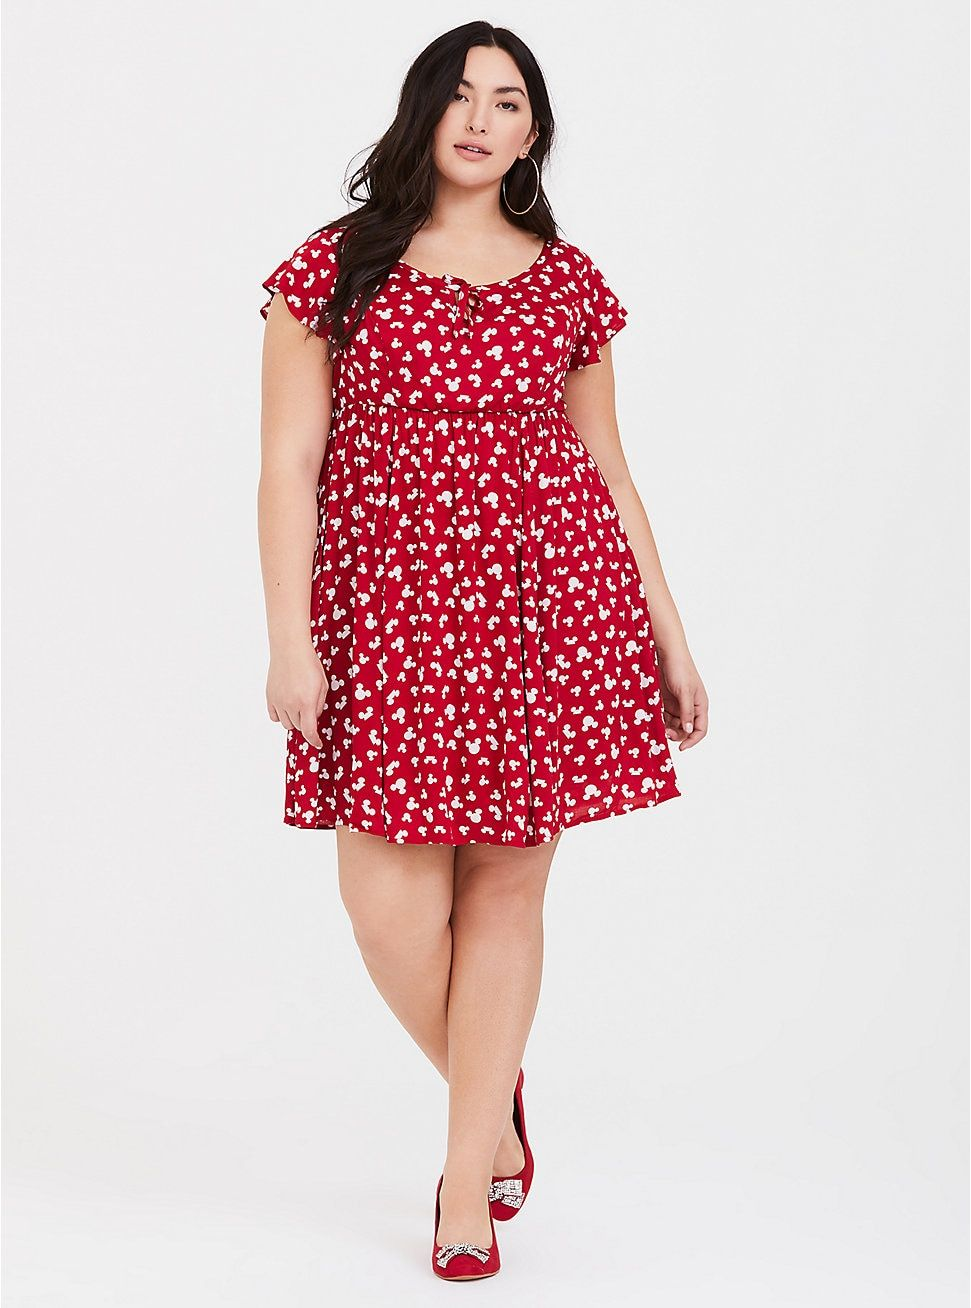 899d5eca377 Plus Size Disney Mickey s 90th Anniversary Red Silhouetted Skater Dress